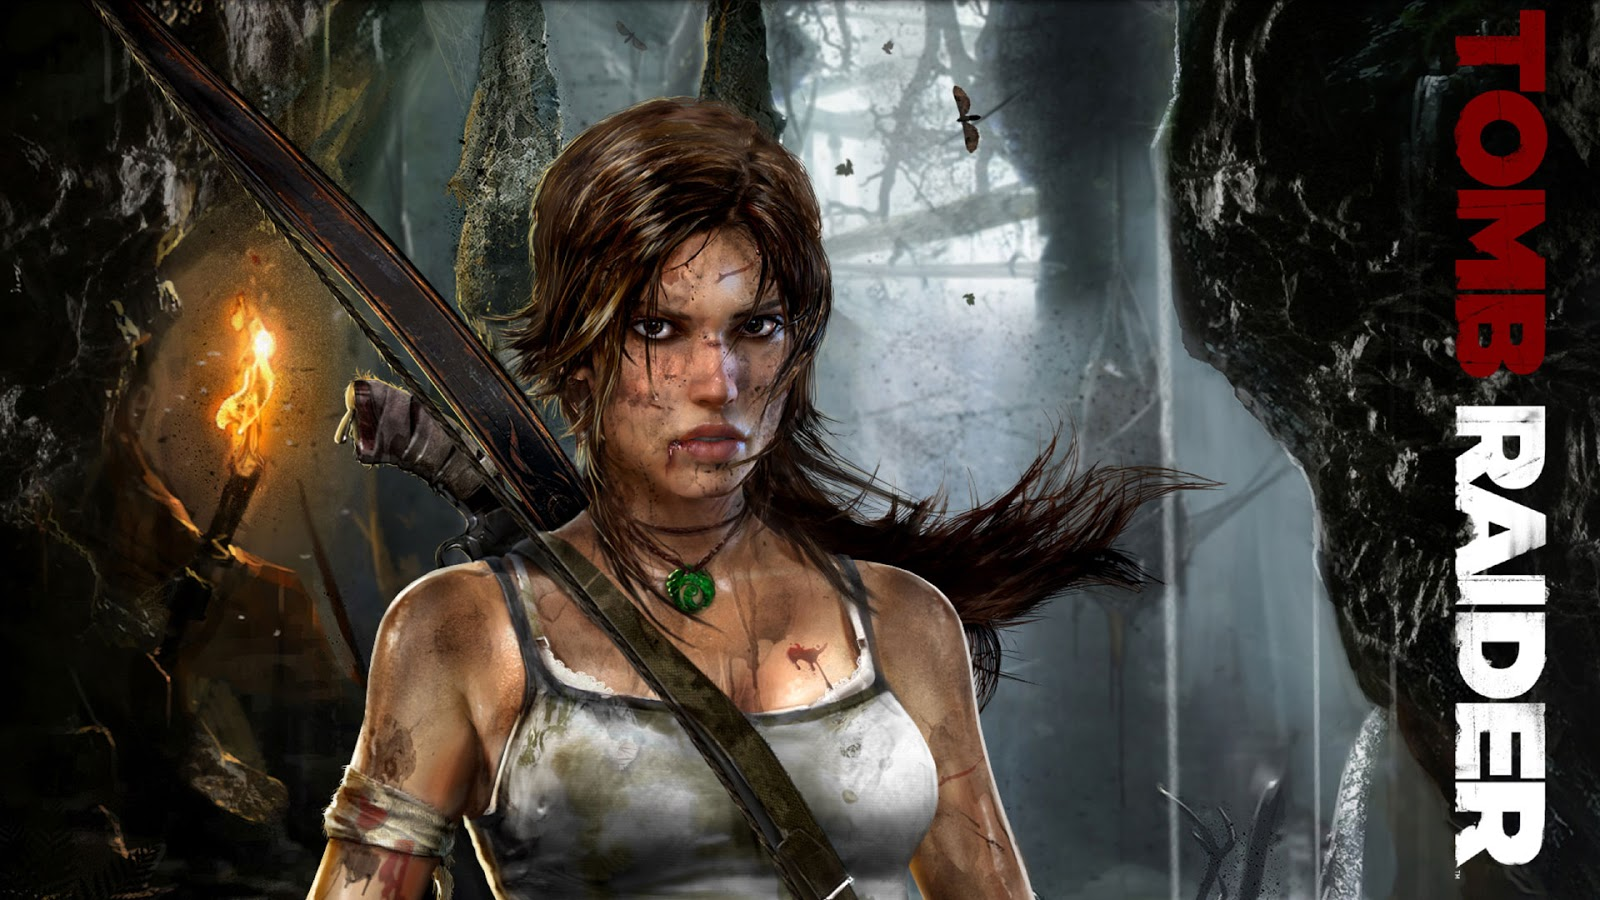 Tomb Raider HD & Widescreen Wallpaper 0.870158242792427